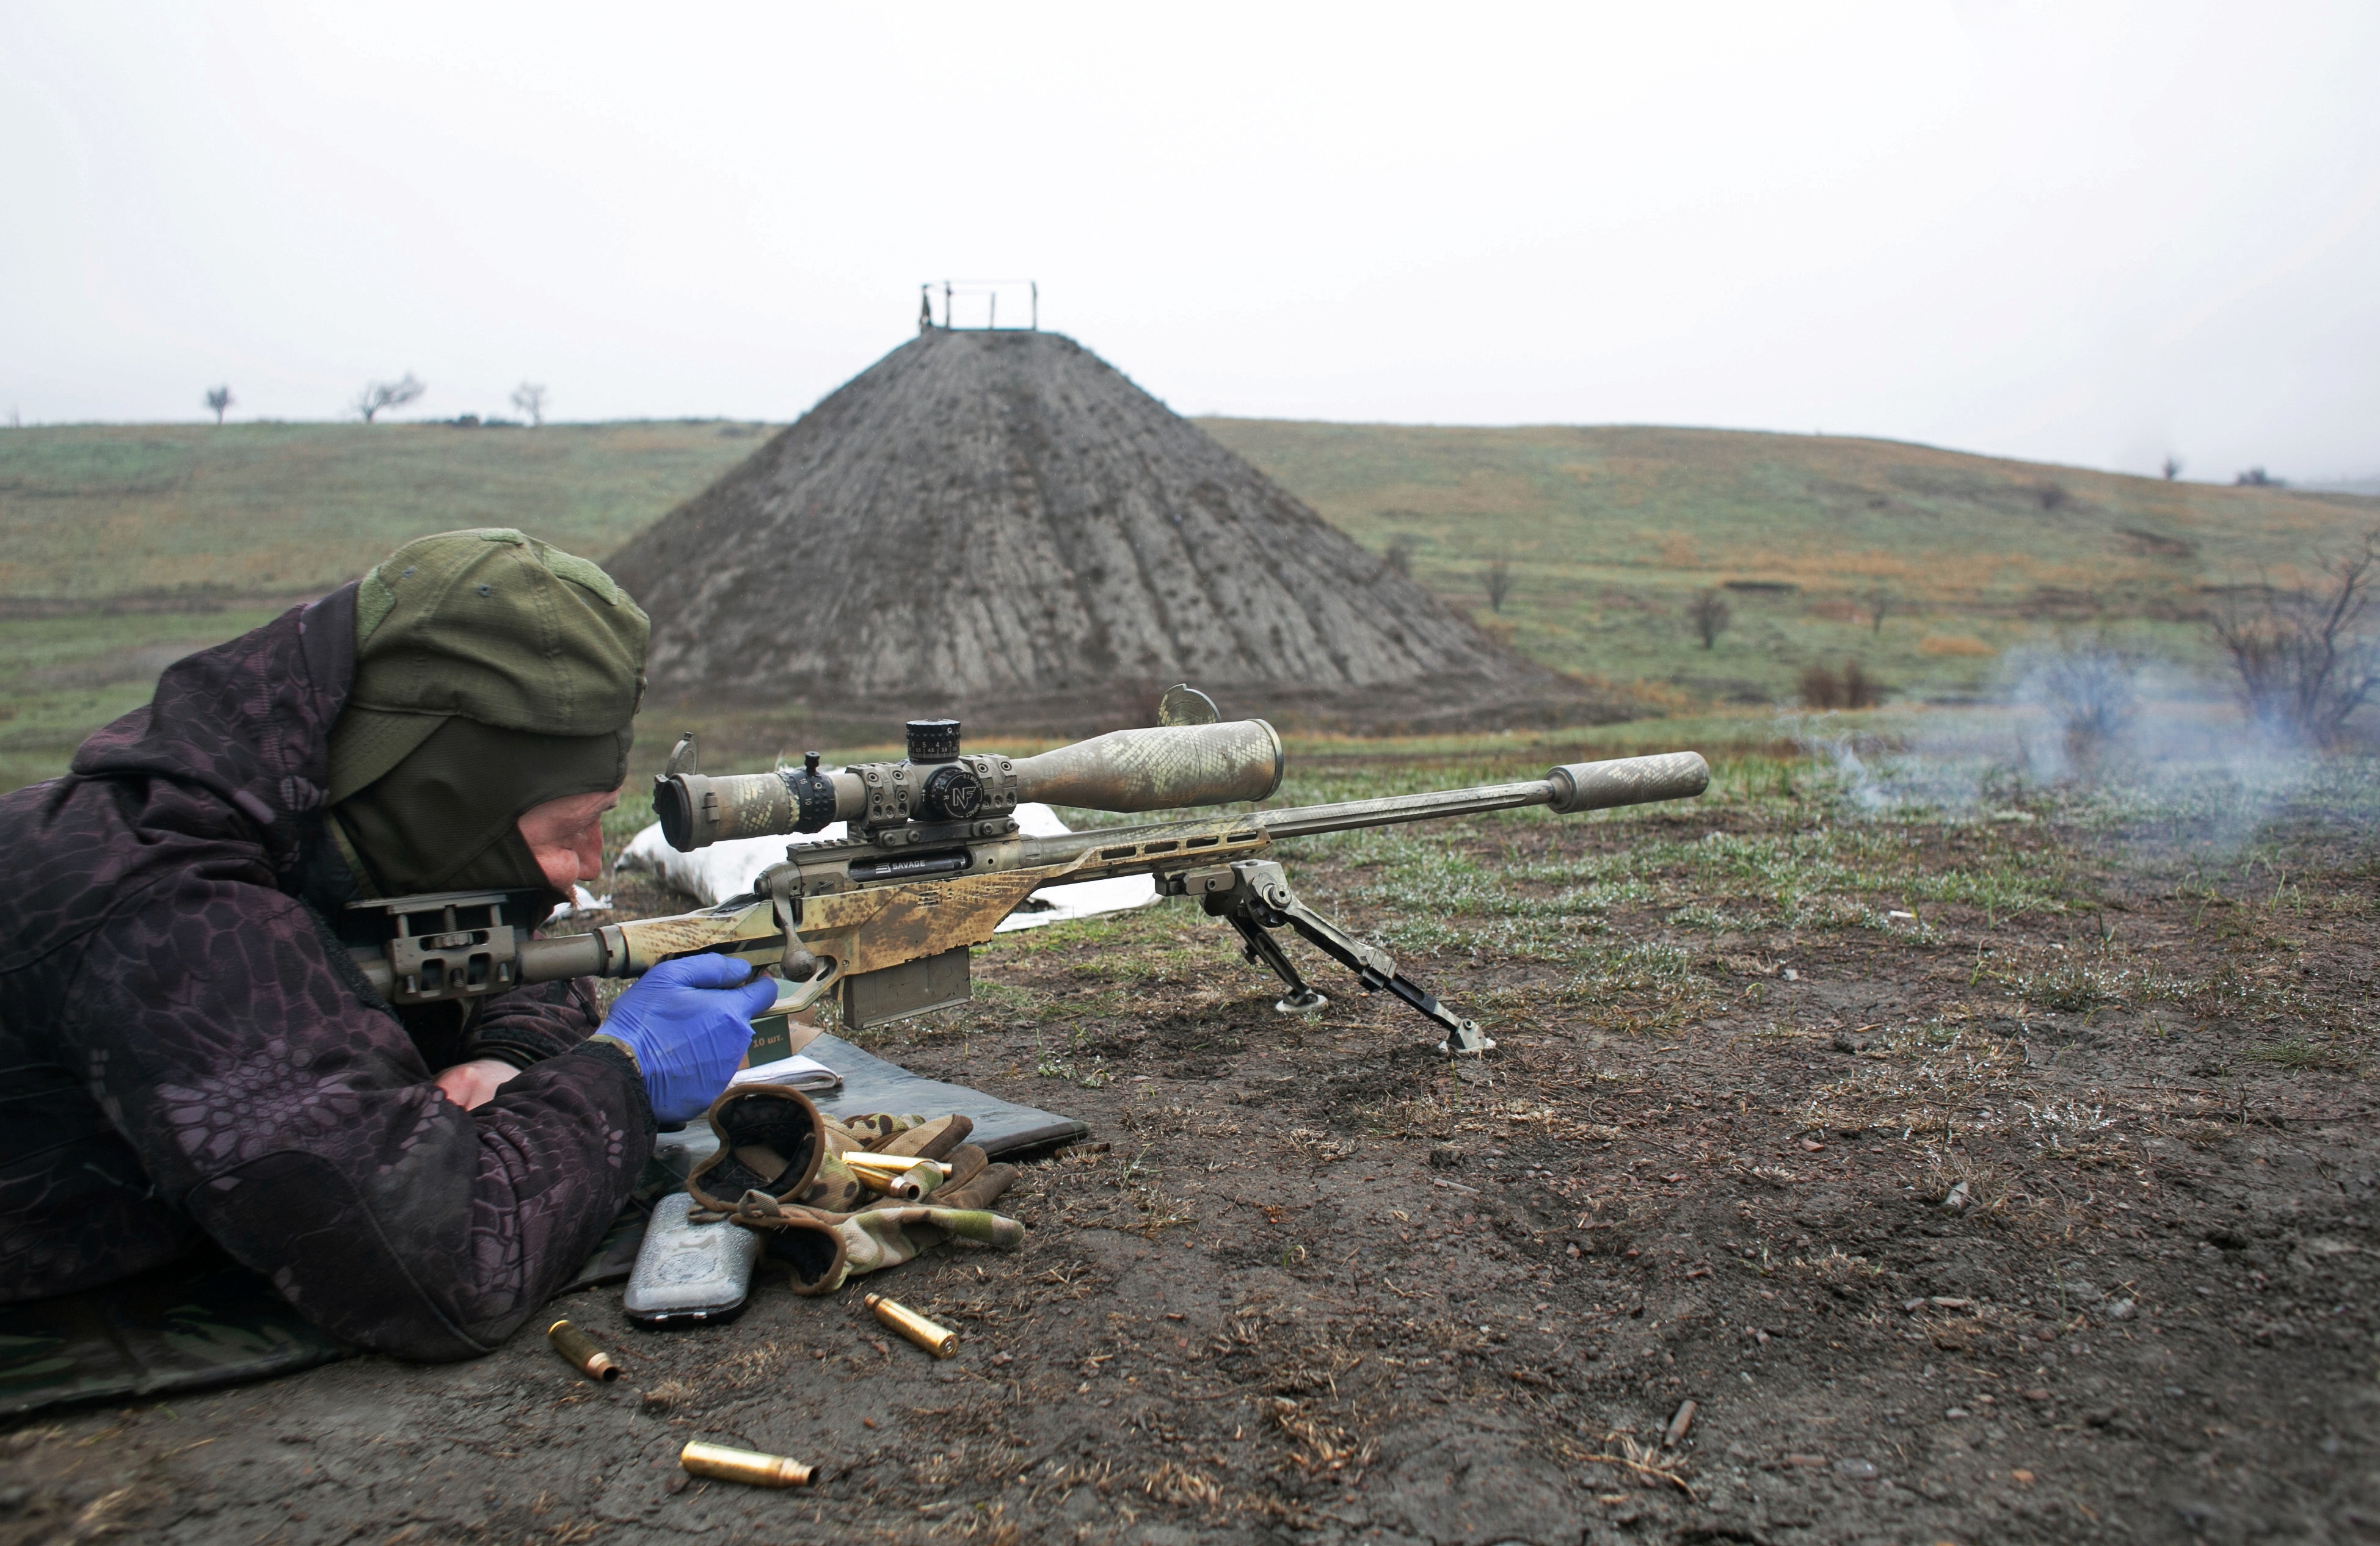 A sniper of the Ukrainian armed forces fires his rifle during training at a firing range near the town of Marinka inDonetsk region, Ukraine April 13, 2021. REUTERS/Anastasia Vlasova